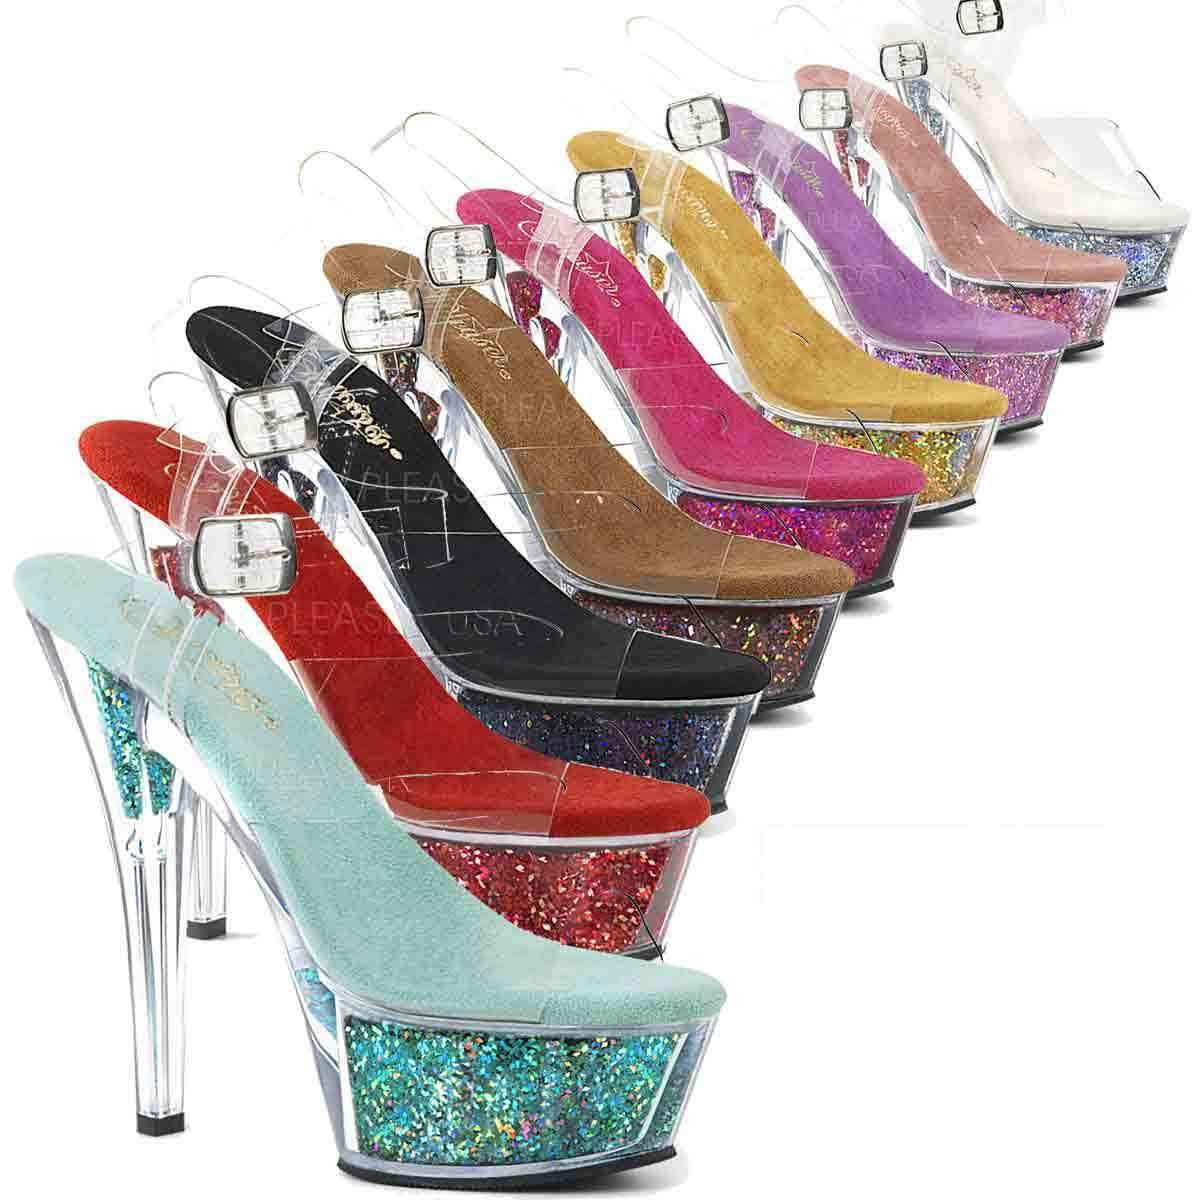 153c0dc8568e Stripper Shoes | Kiss-208GF, Holographic Glitter Filled Platform Sandal  Color Available: Silver ...